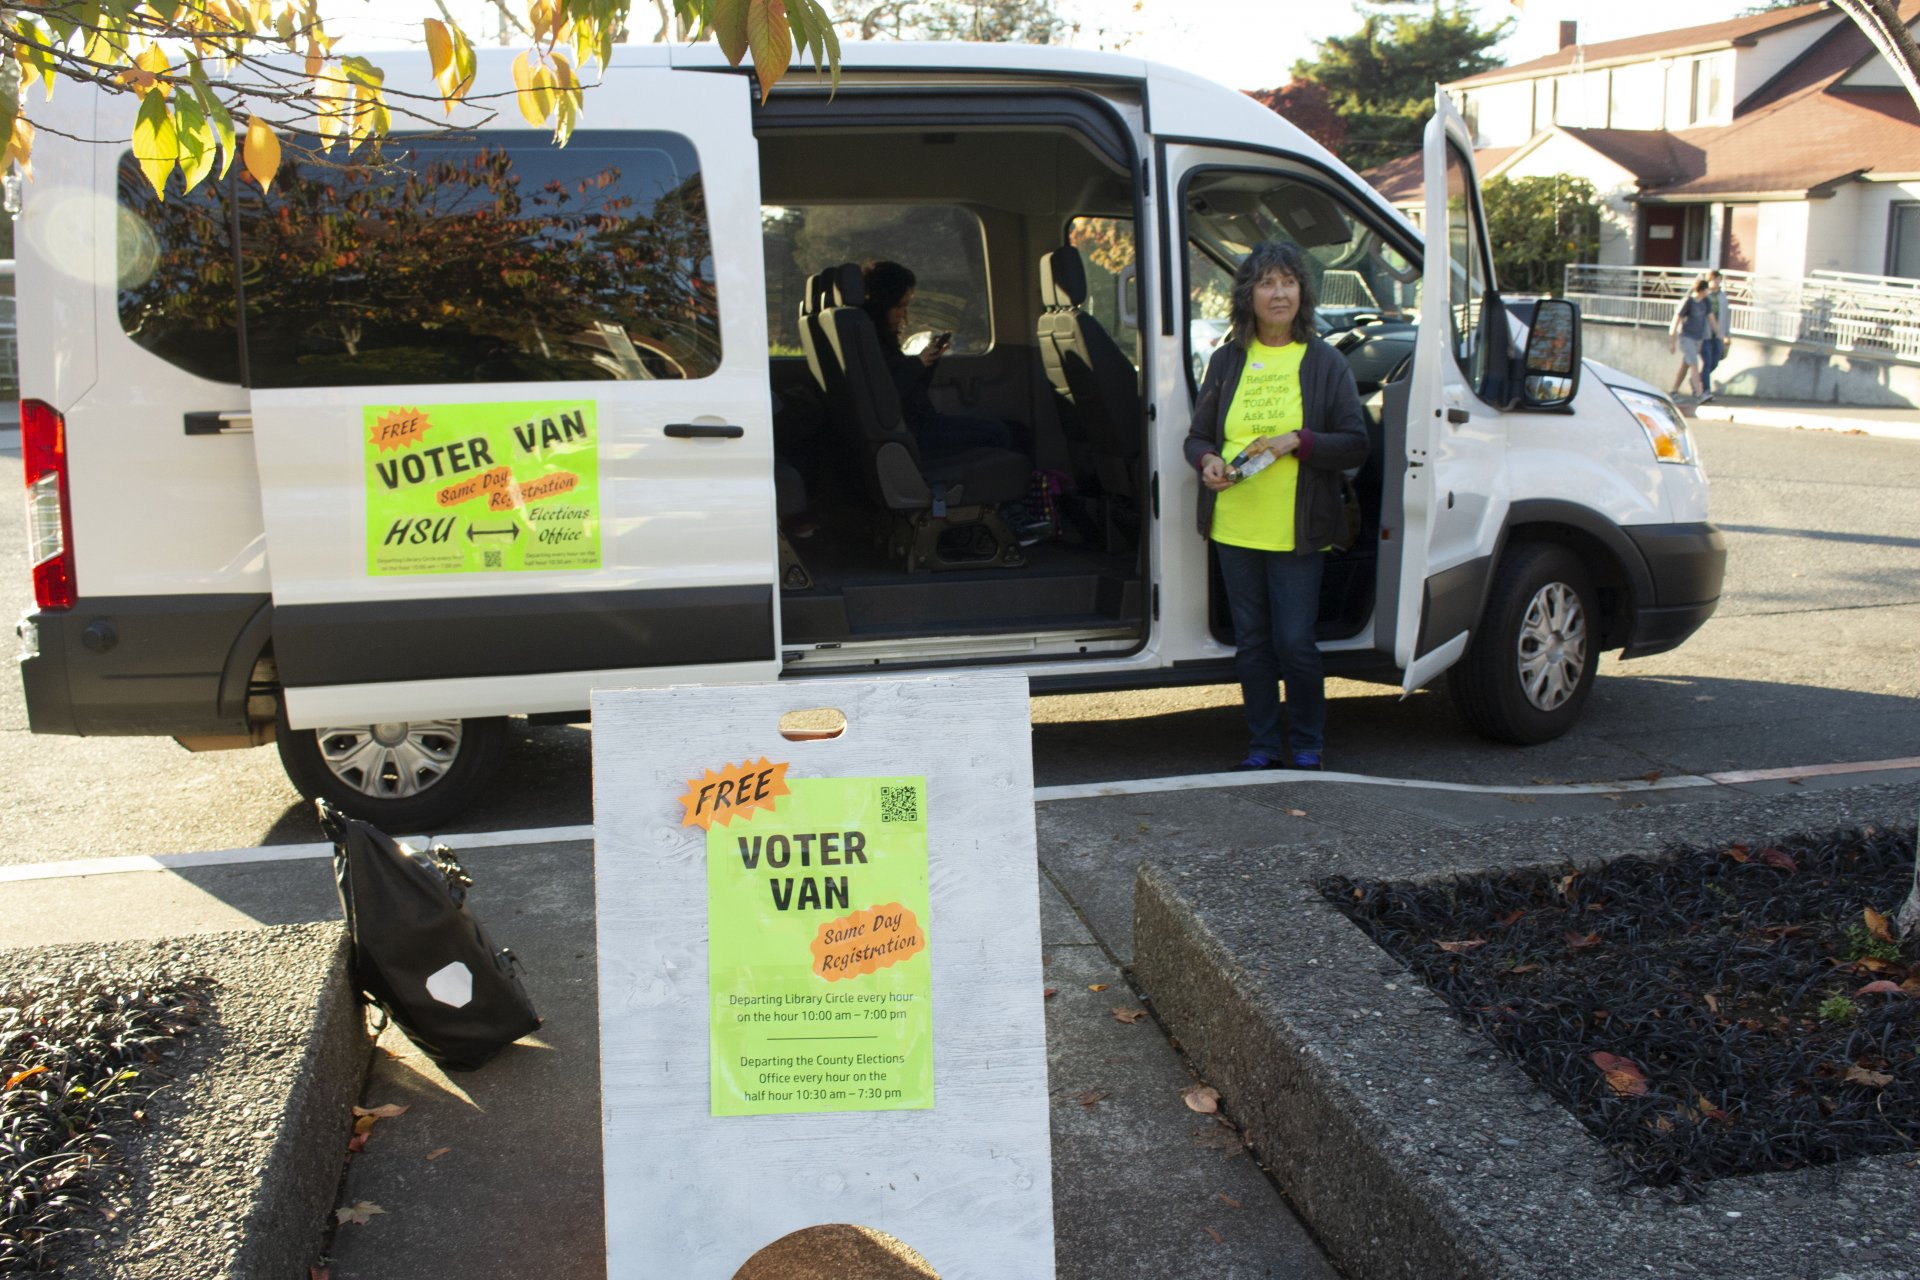 Kathryn Donoghue and the Voter Van waiting to pick people up at the Library Circle on HSU campus to vote on Tuesday, Nov. 6. | Photo by Deven Chavannes